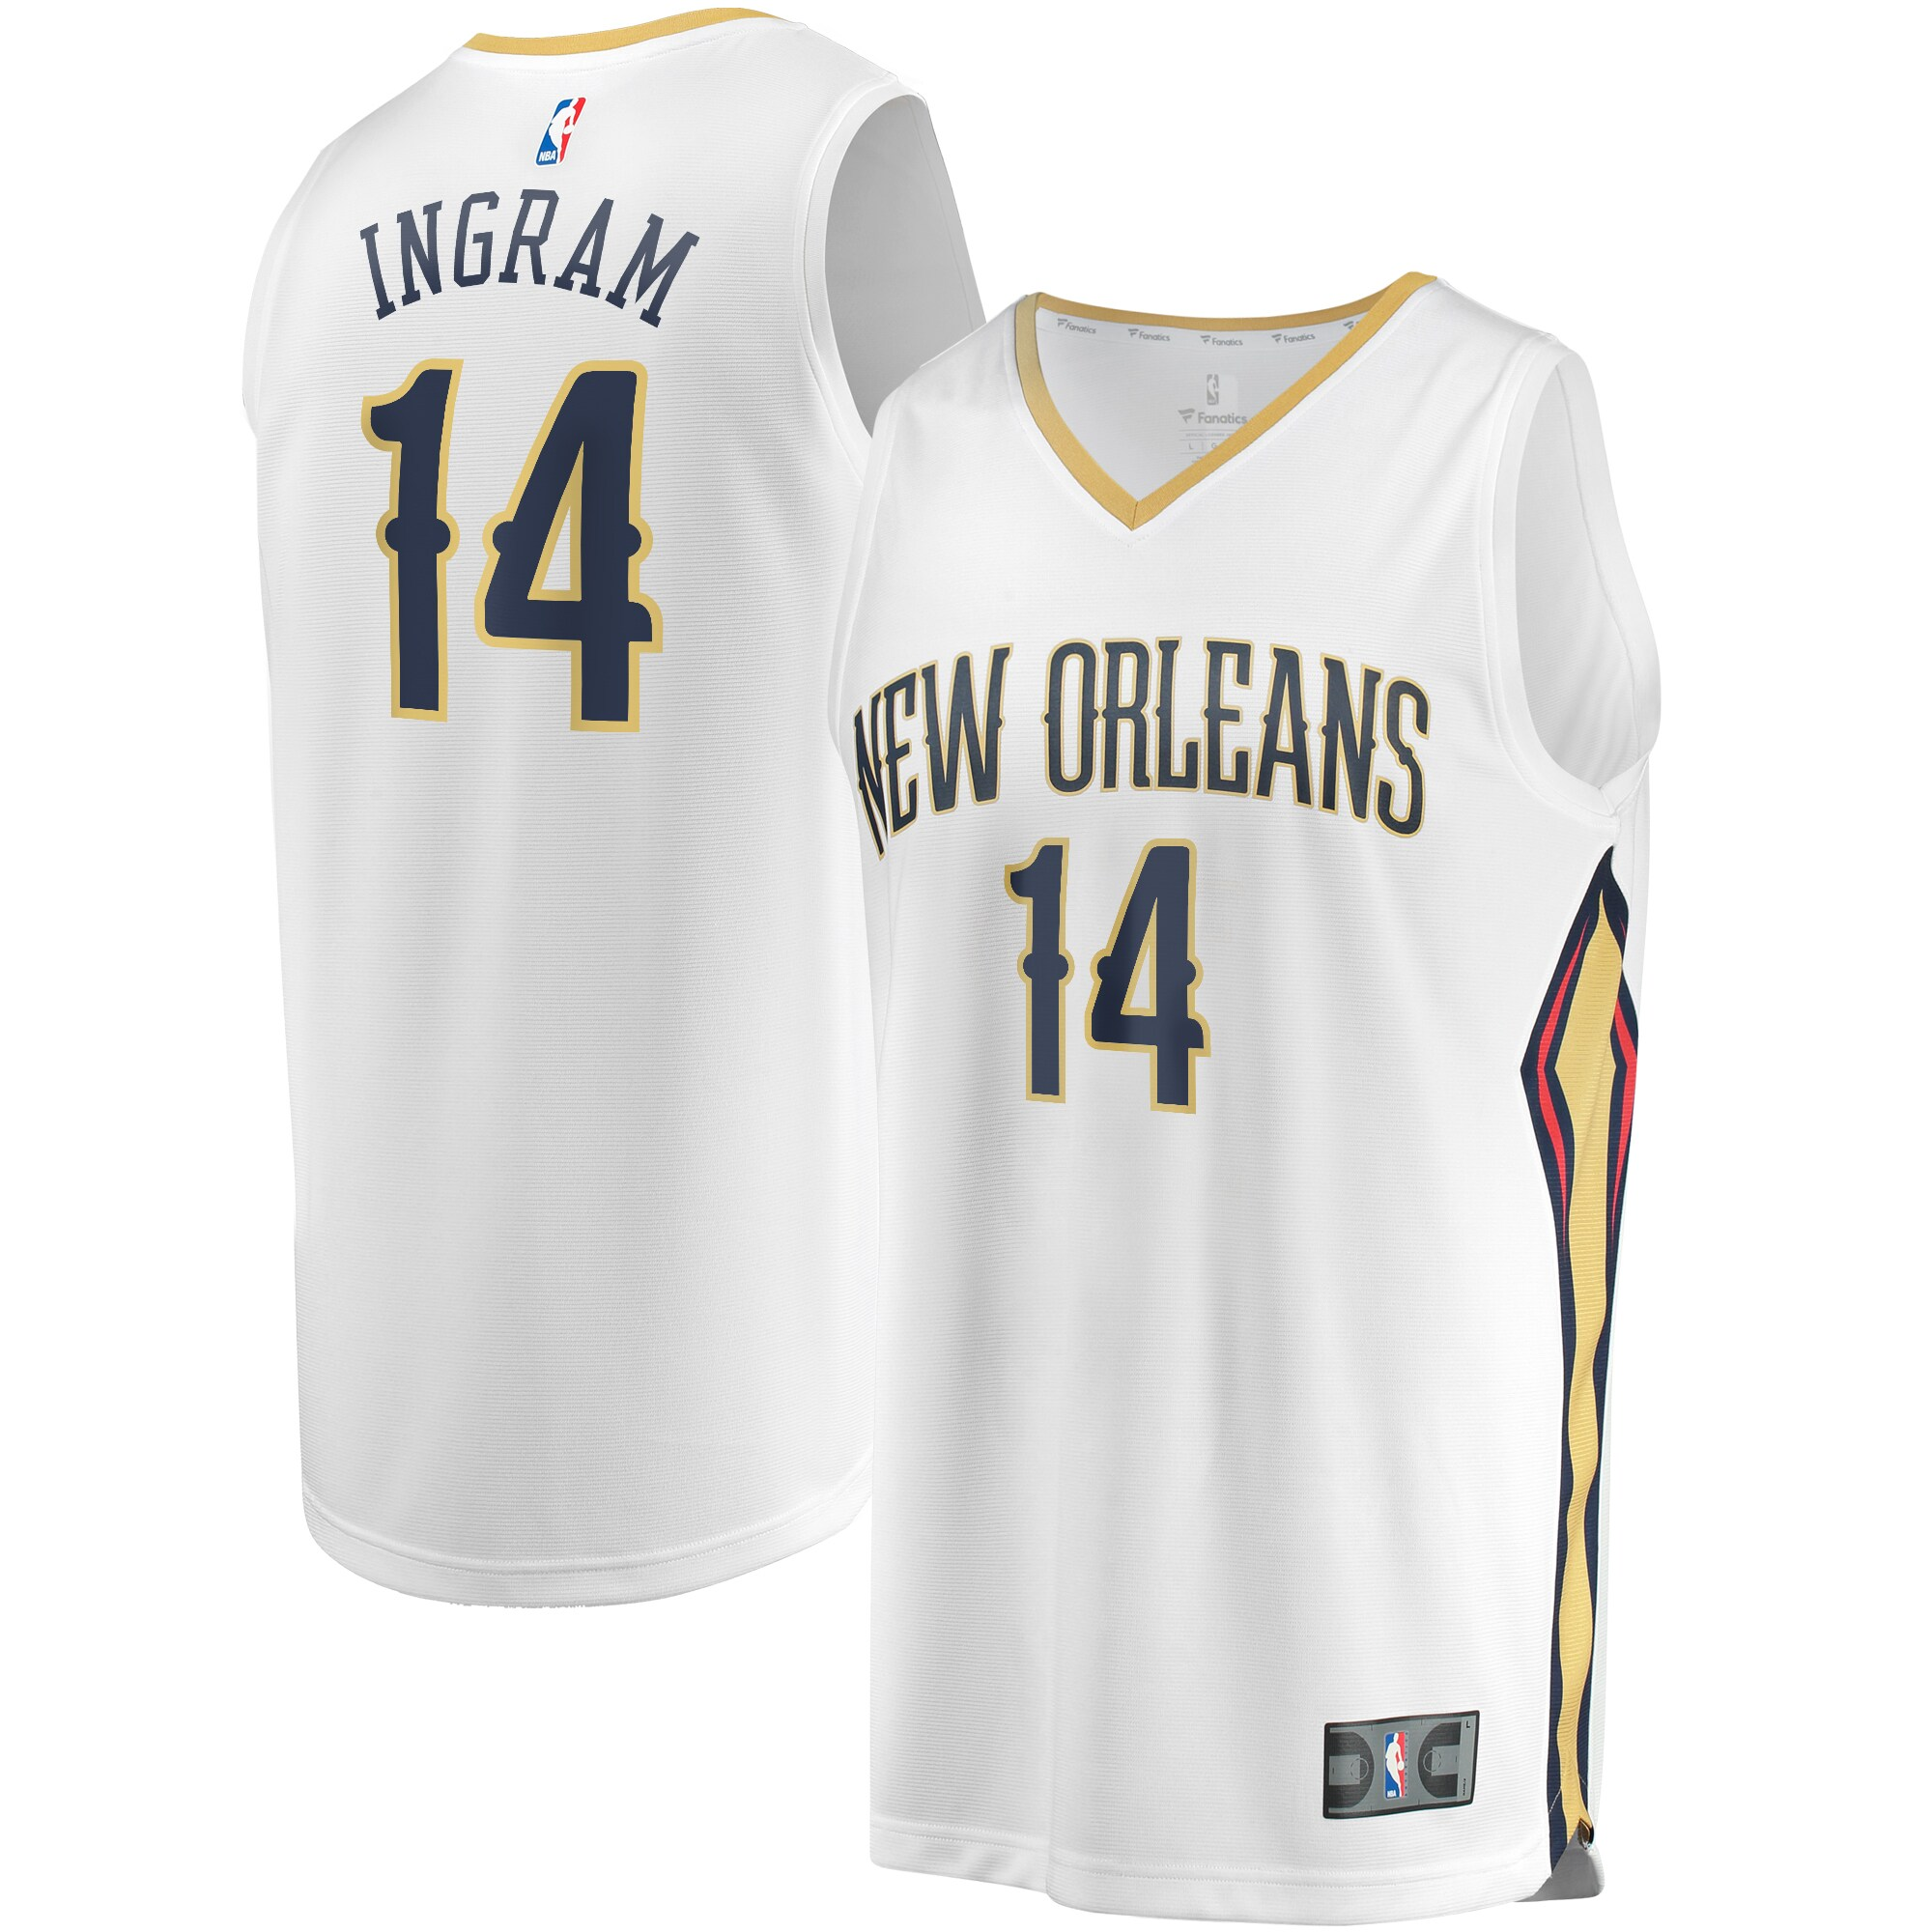 Brandon Ingram New Orleans Pelicans Fanatics Branded Youth Fast Break Replica Jersey White - Association Edition